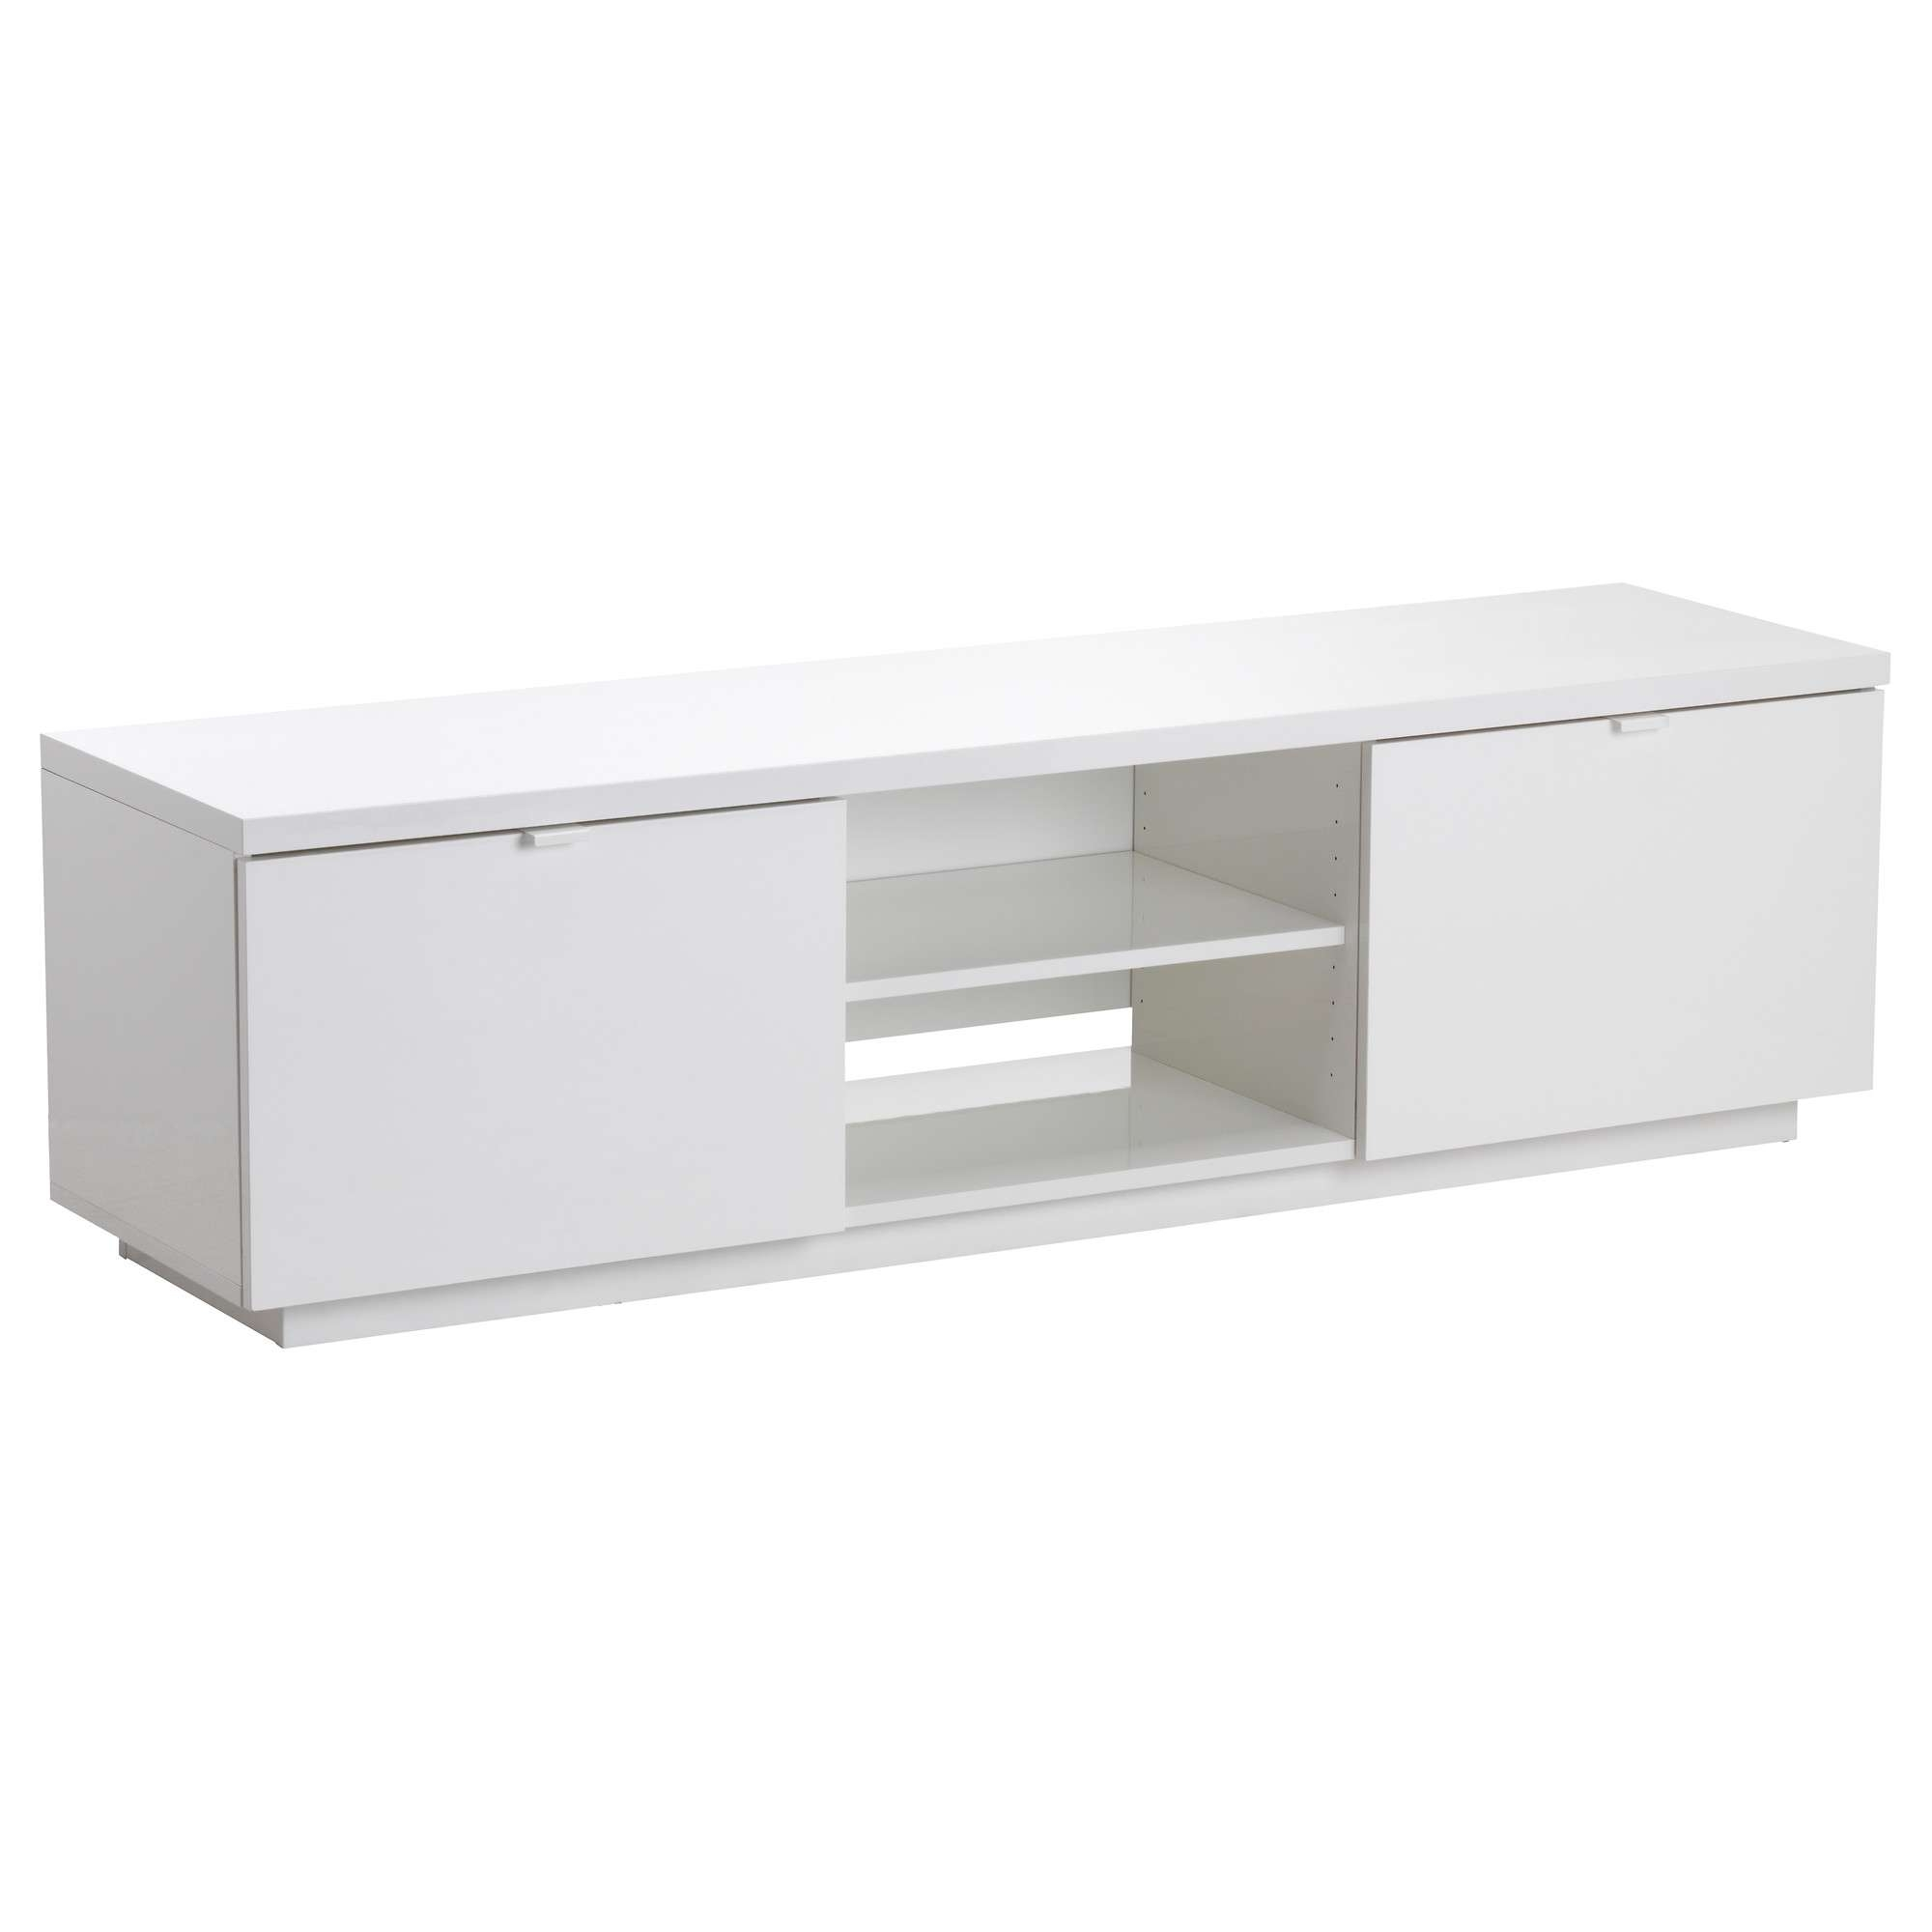 Byås Tv Bench High Gloss White 160X42X45 Cm – Ikea With Regard To White Gloss Tv Cabinets (View 4 of 20)